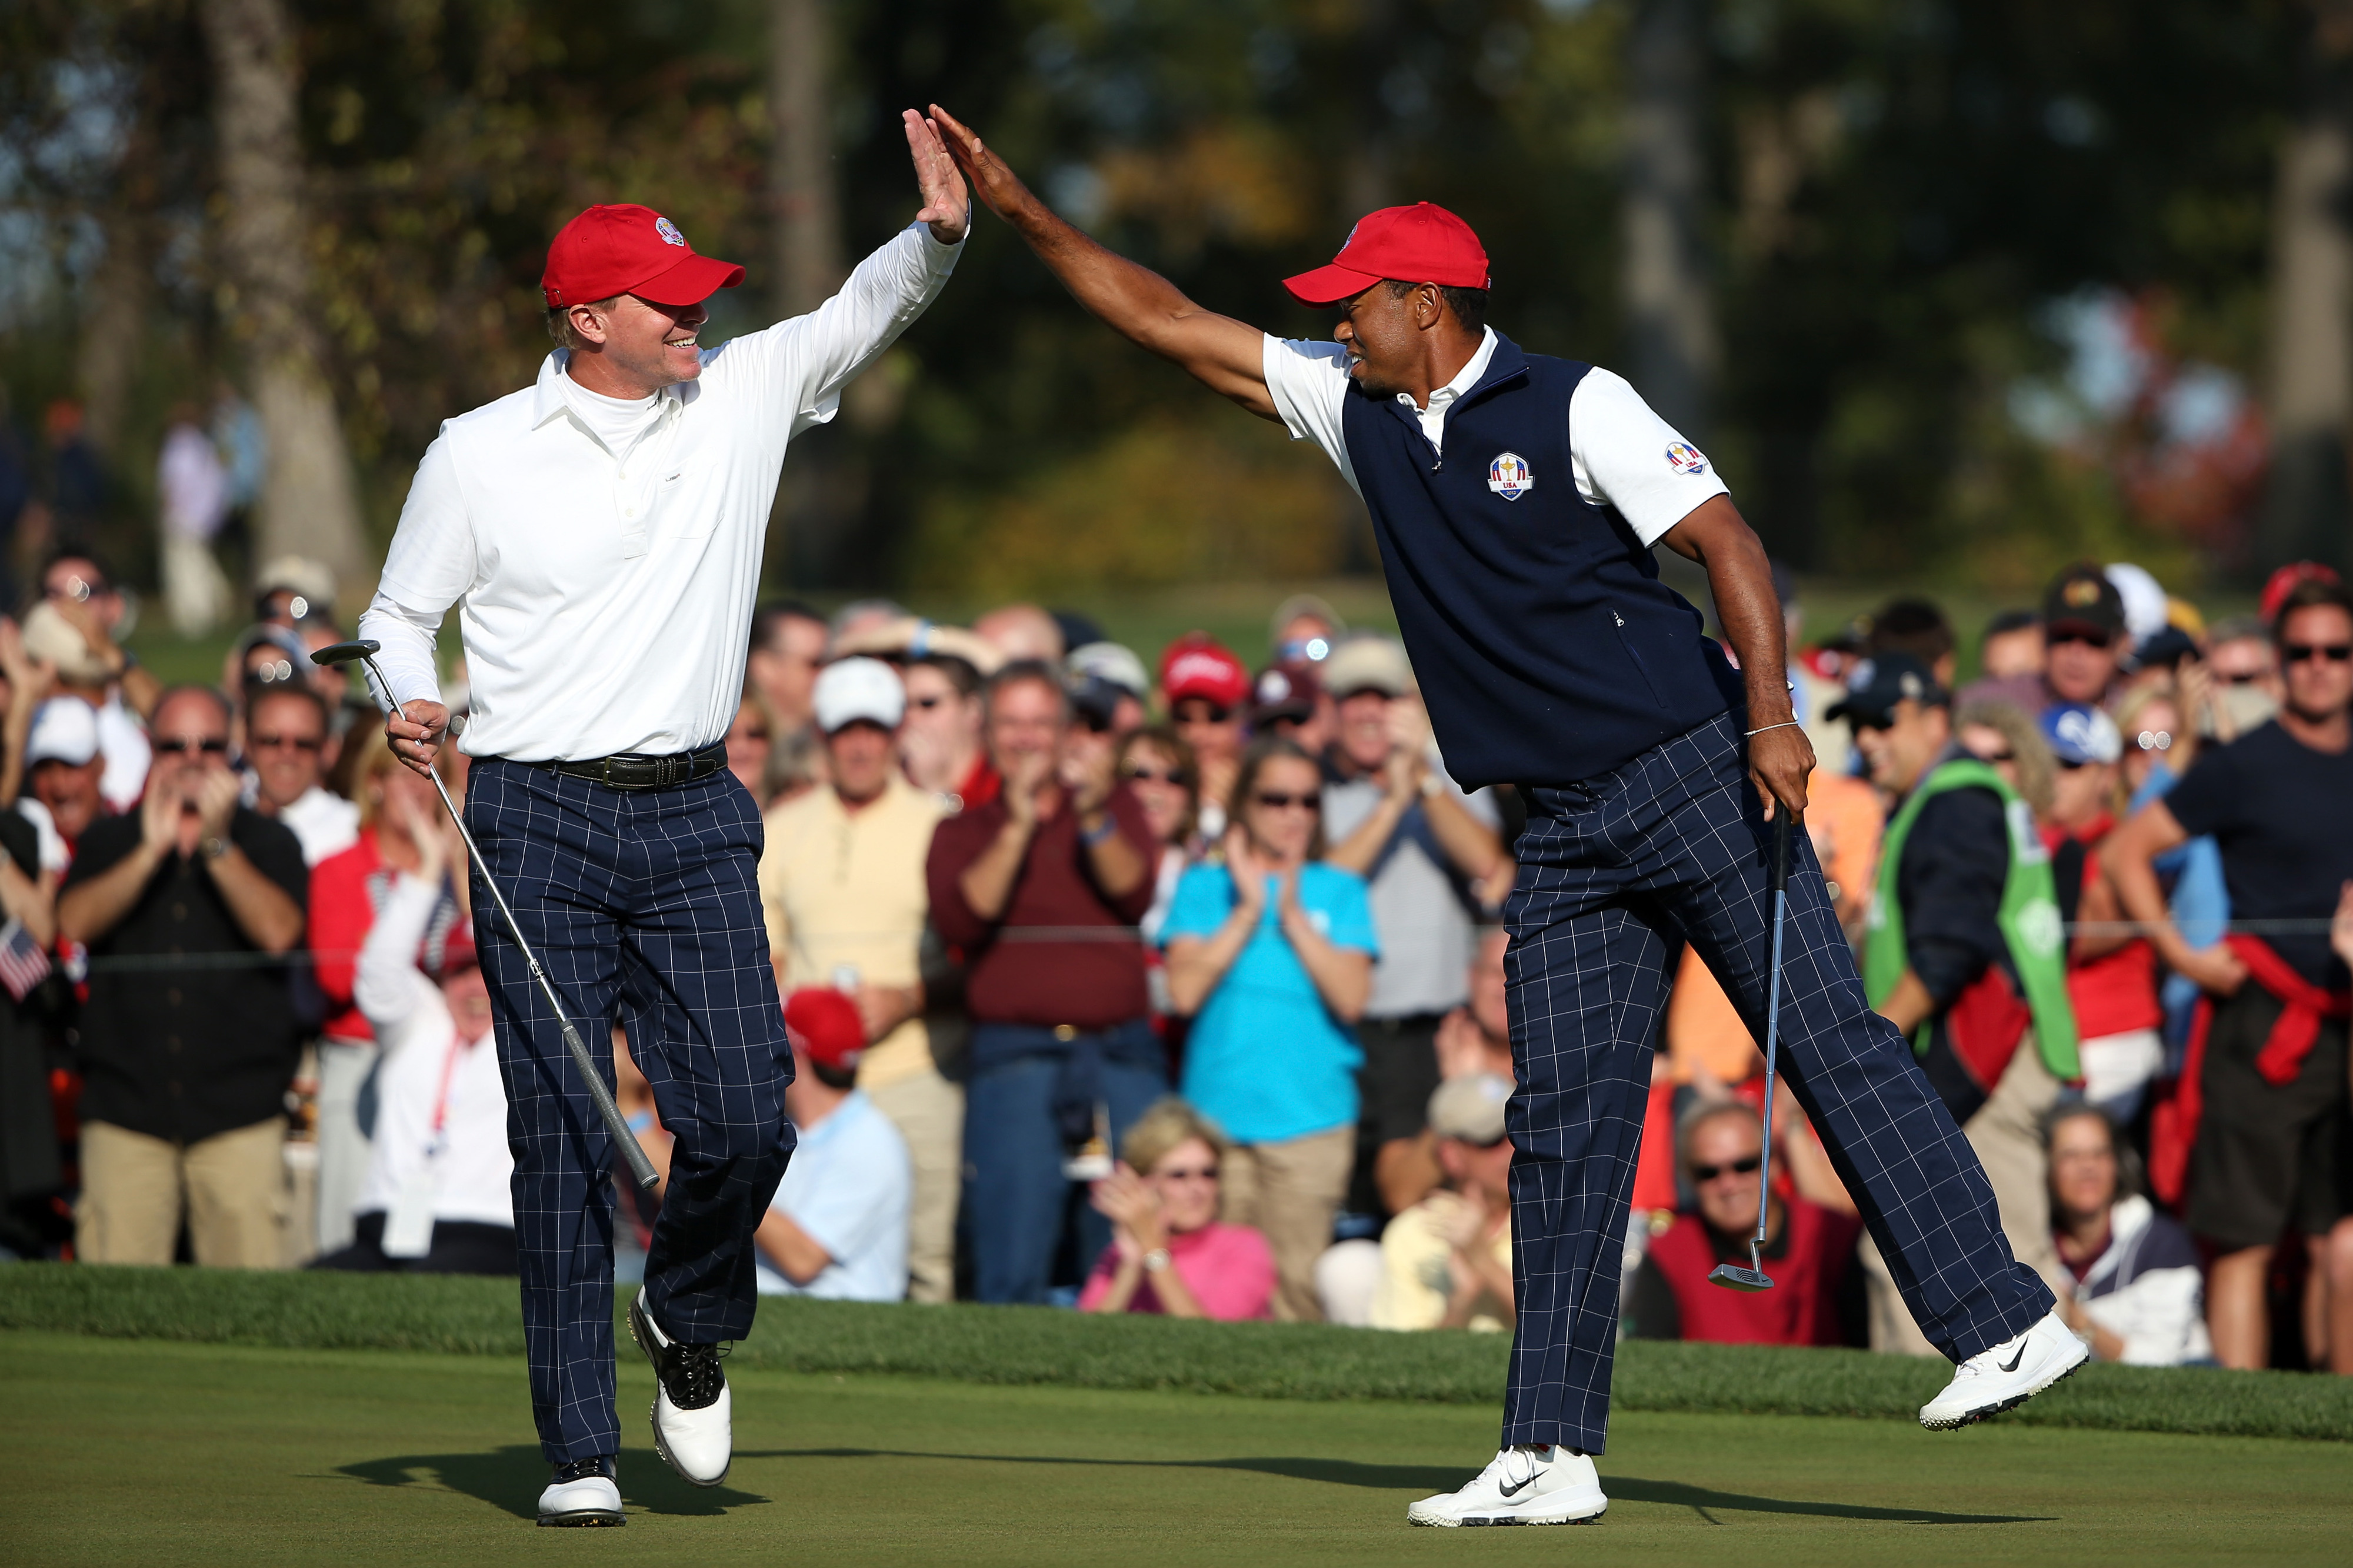 Steve Stricker-Tiger Woods split expected at 2013 Presidents Cup